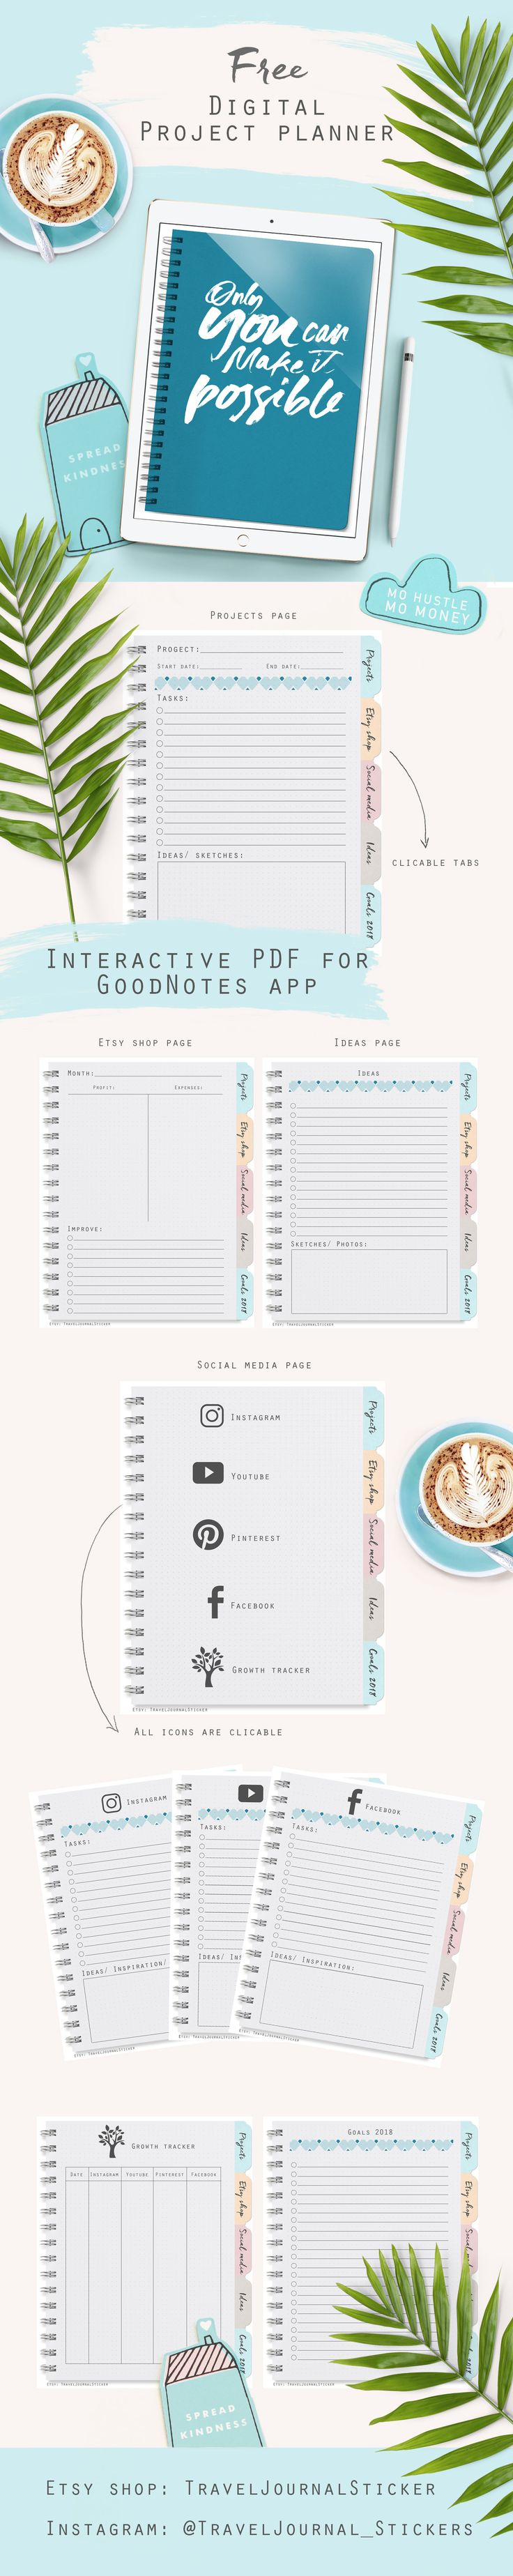 Free Printable Project Planner.  Link for downloading: https://www.dropbox.com/s/5dzs9xn3asfxh2g/Project%20planner.pdf?dl=0